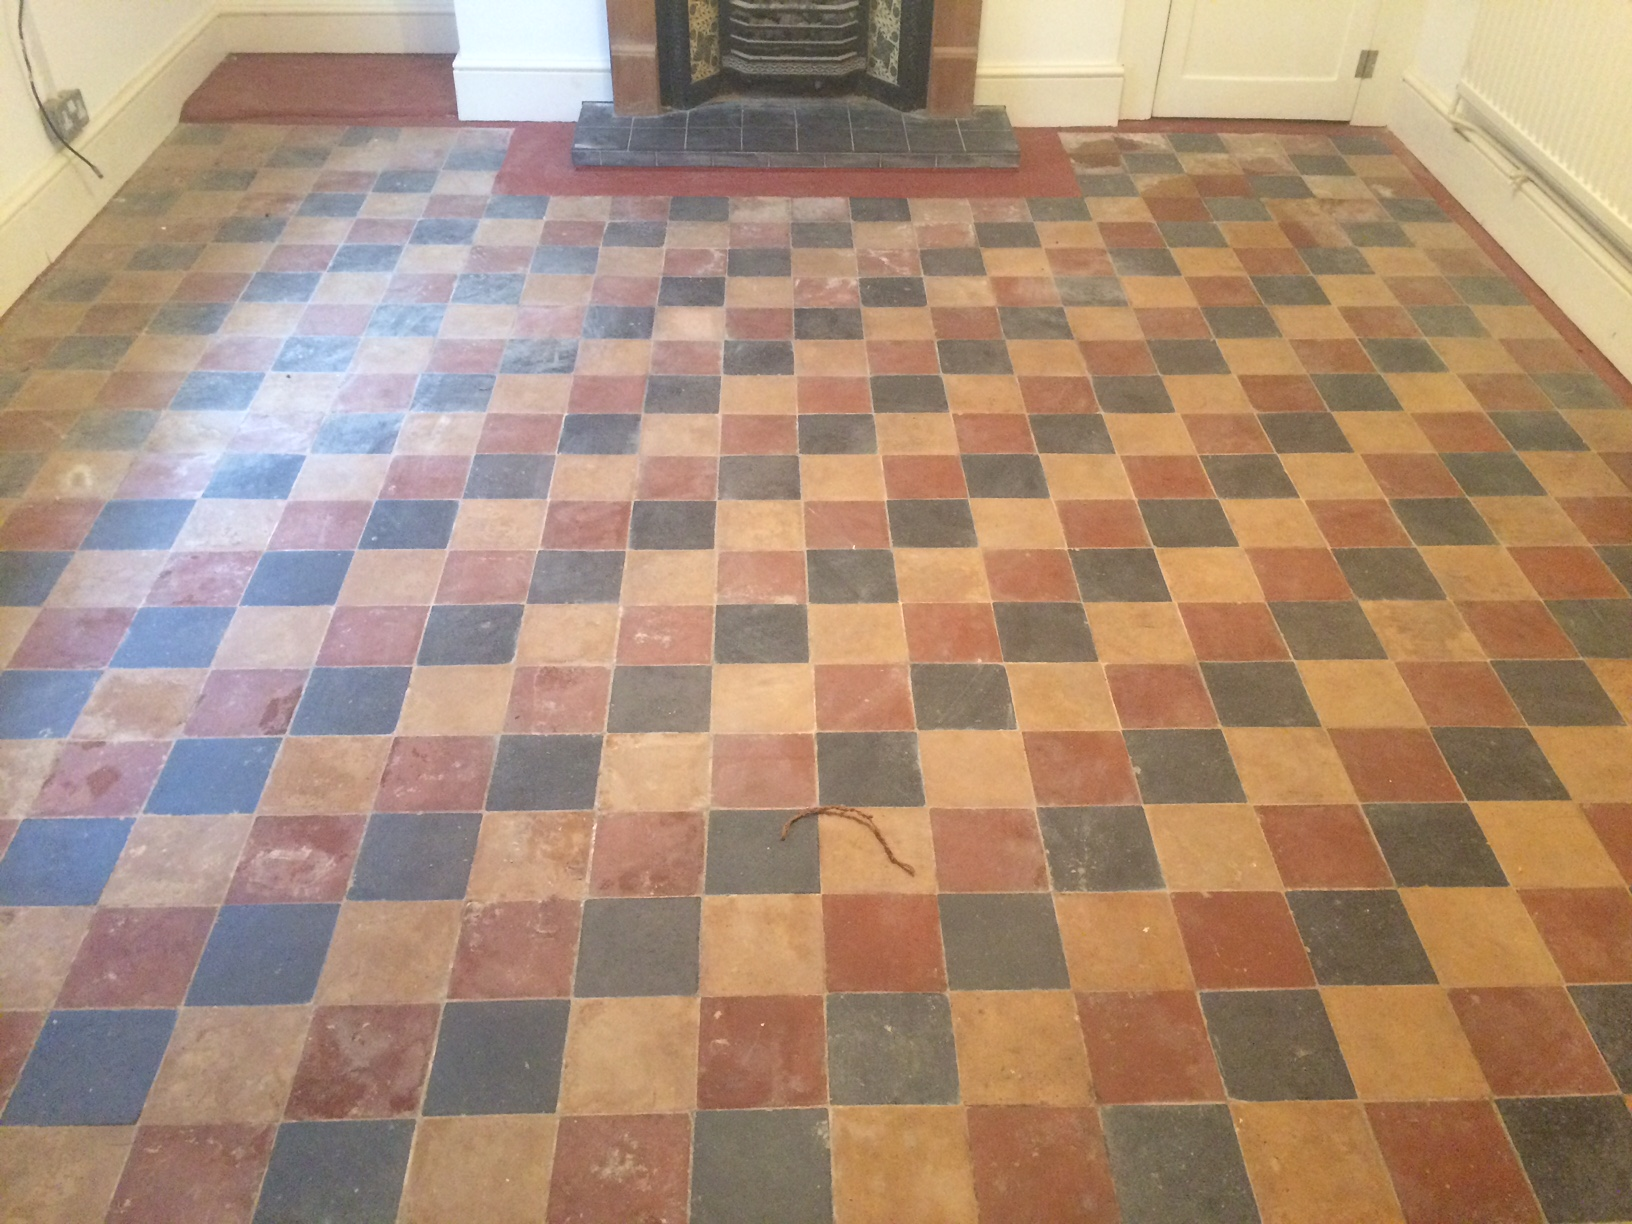 Restoring victorian floor tiles hidden under lino in berkshire victorian floor covered in lino pangboune before cleaning doublecrazyfo Gallery